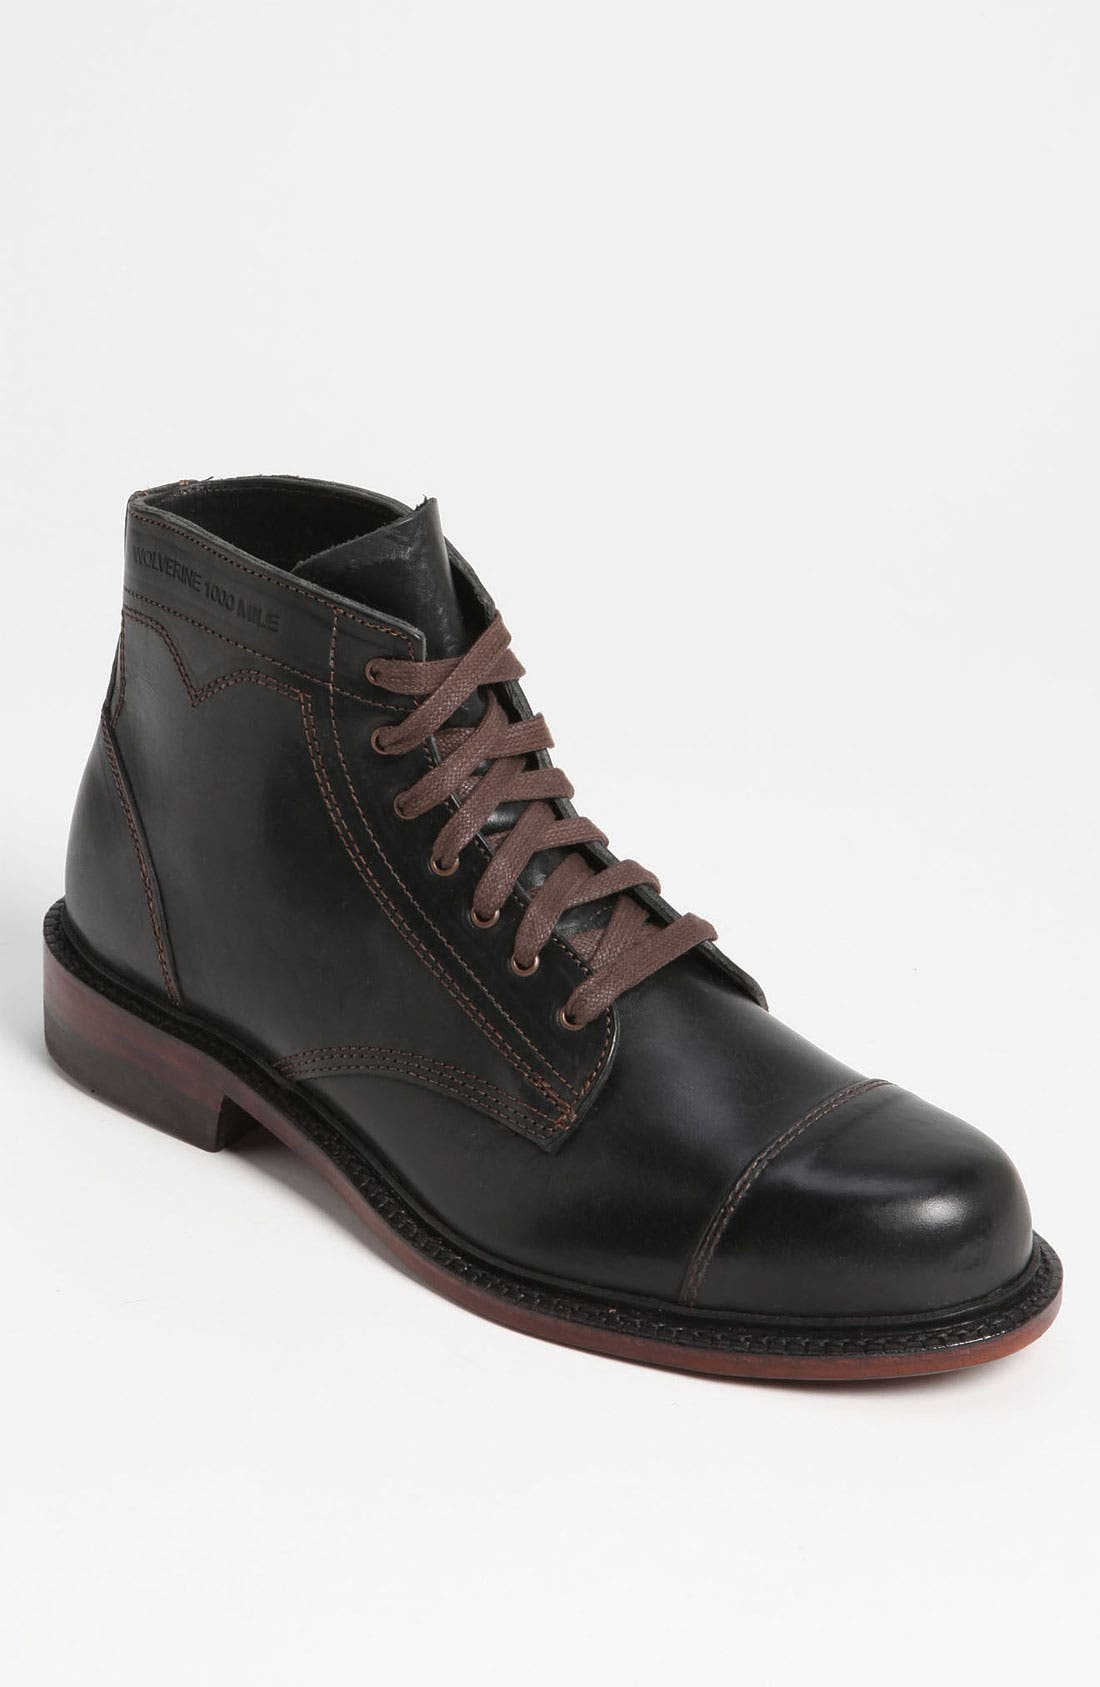 Alternate Image 1 Selected - Wolverine '1000 Mile - Krause' Cap Toe Boot